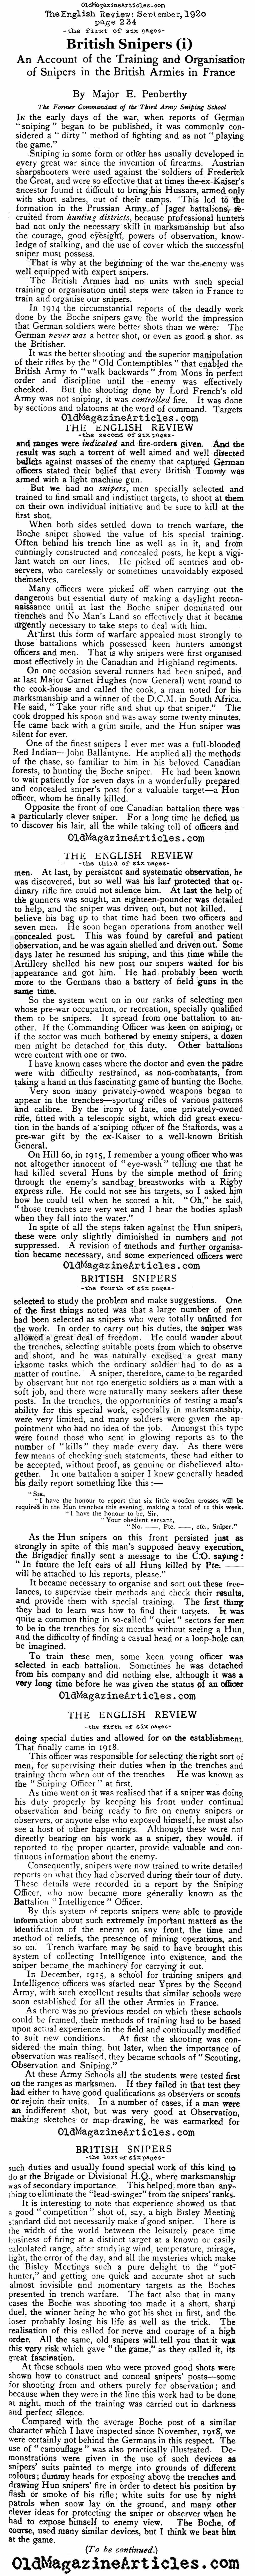 British Snipers on the Western Front (The English Review, 1920)